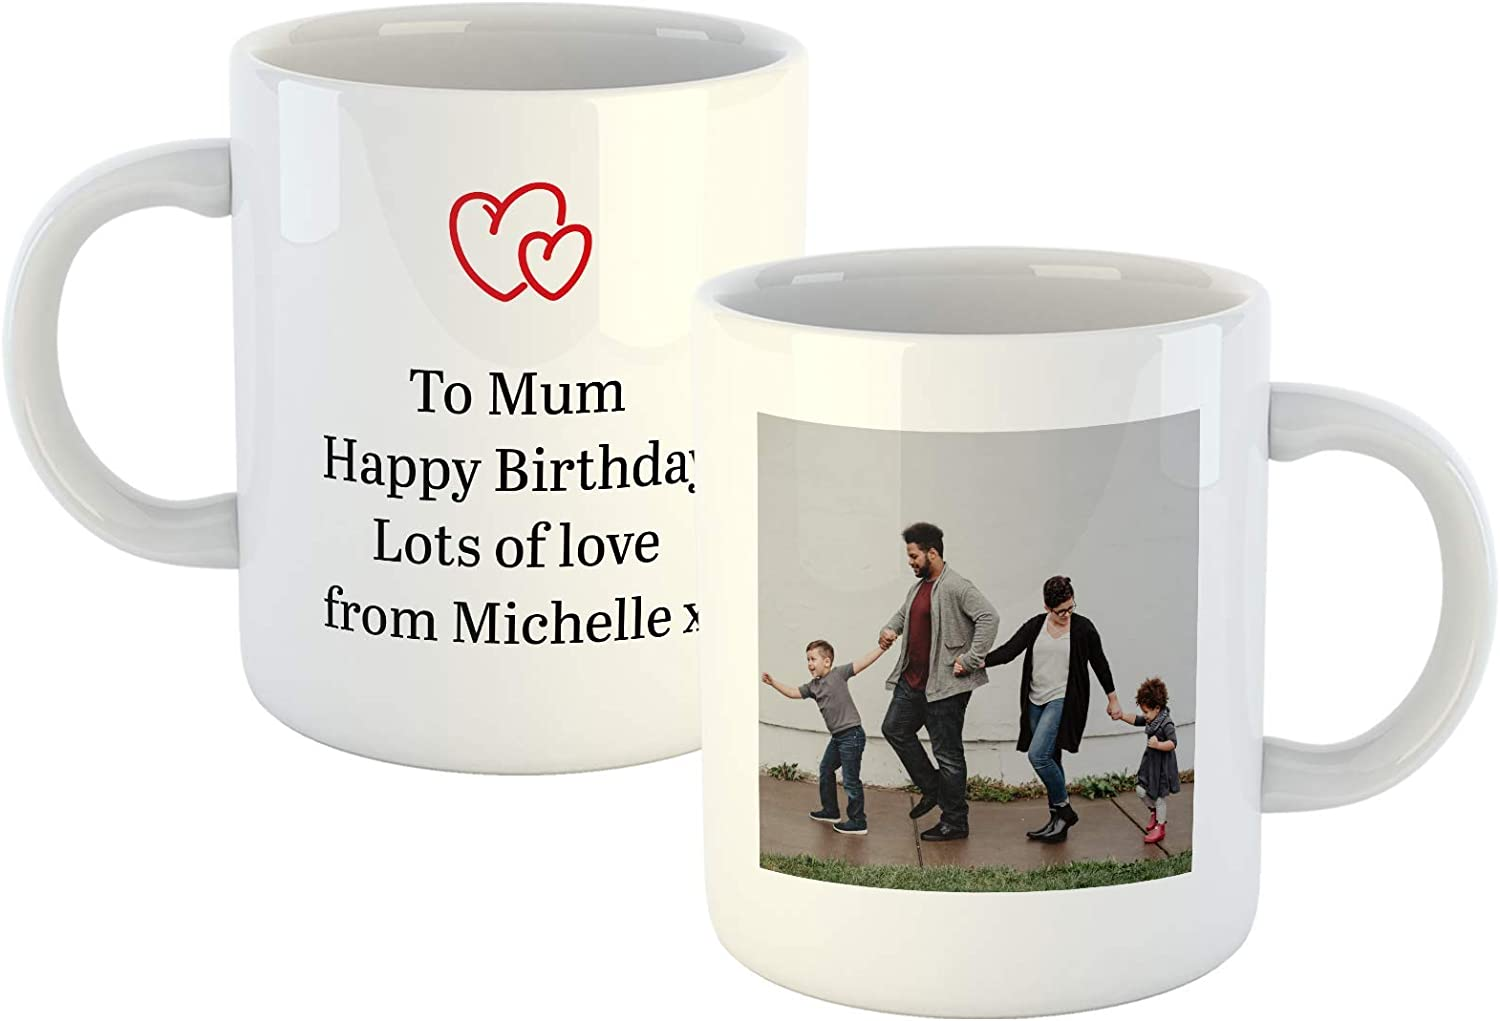 Personalised Mug with Photo and 4 Lines of Text Christmas 10oz Custom Gift for Valentines Upload Your Own Image with A Personal Four Line Message Birthdays